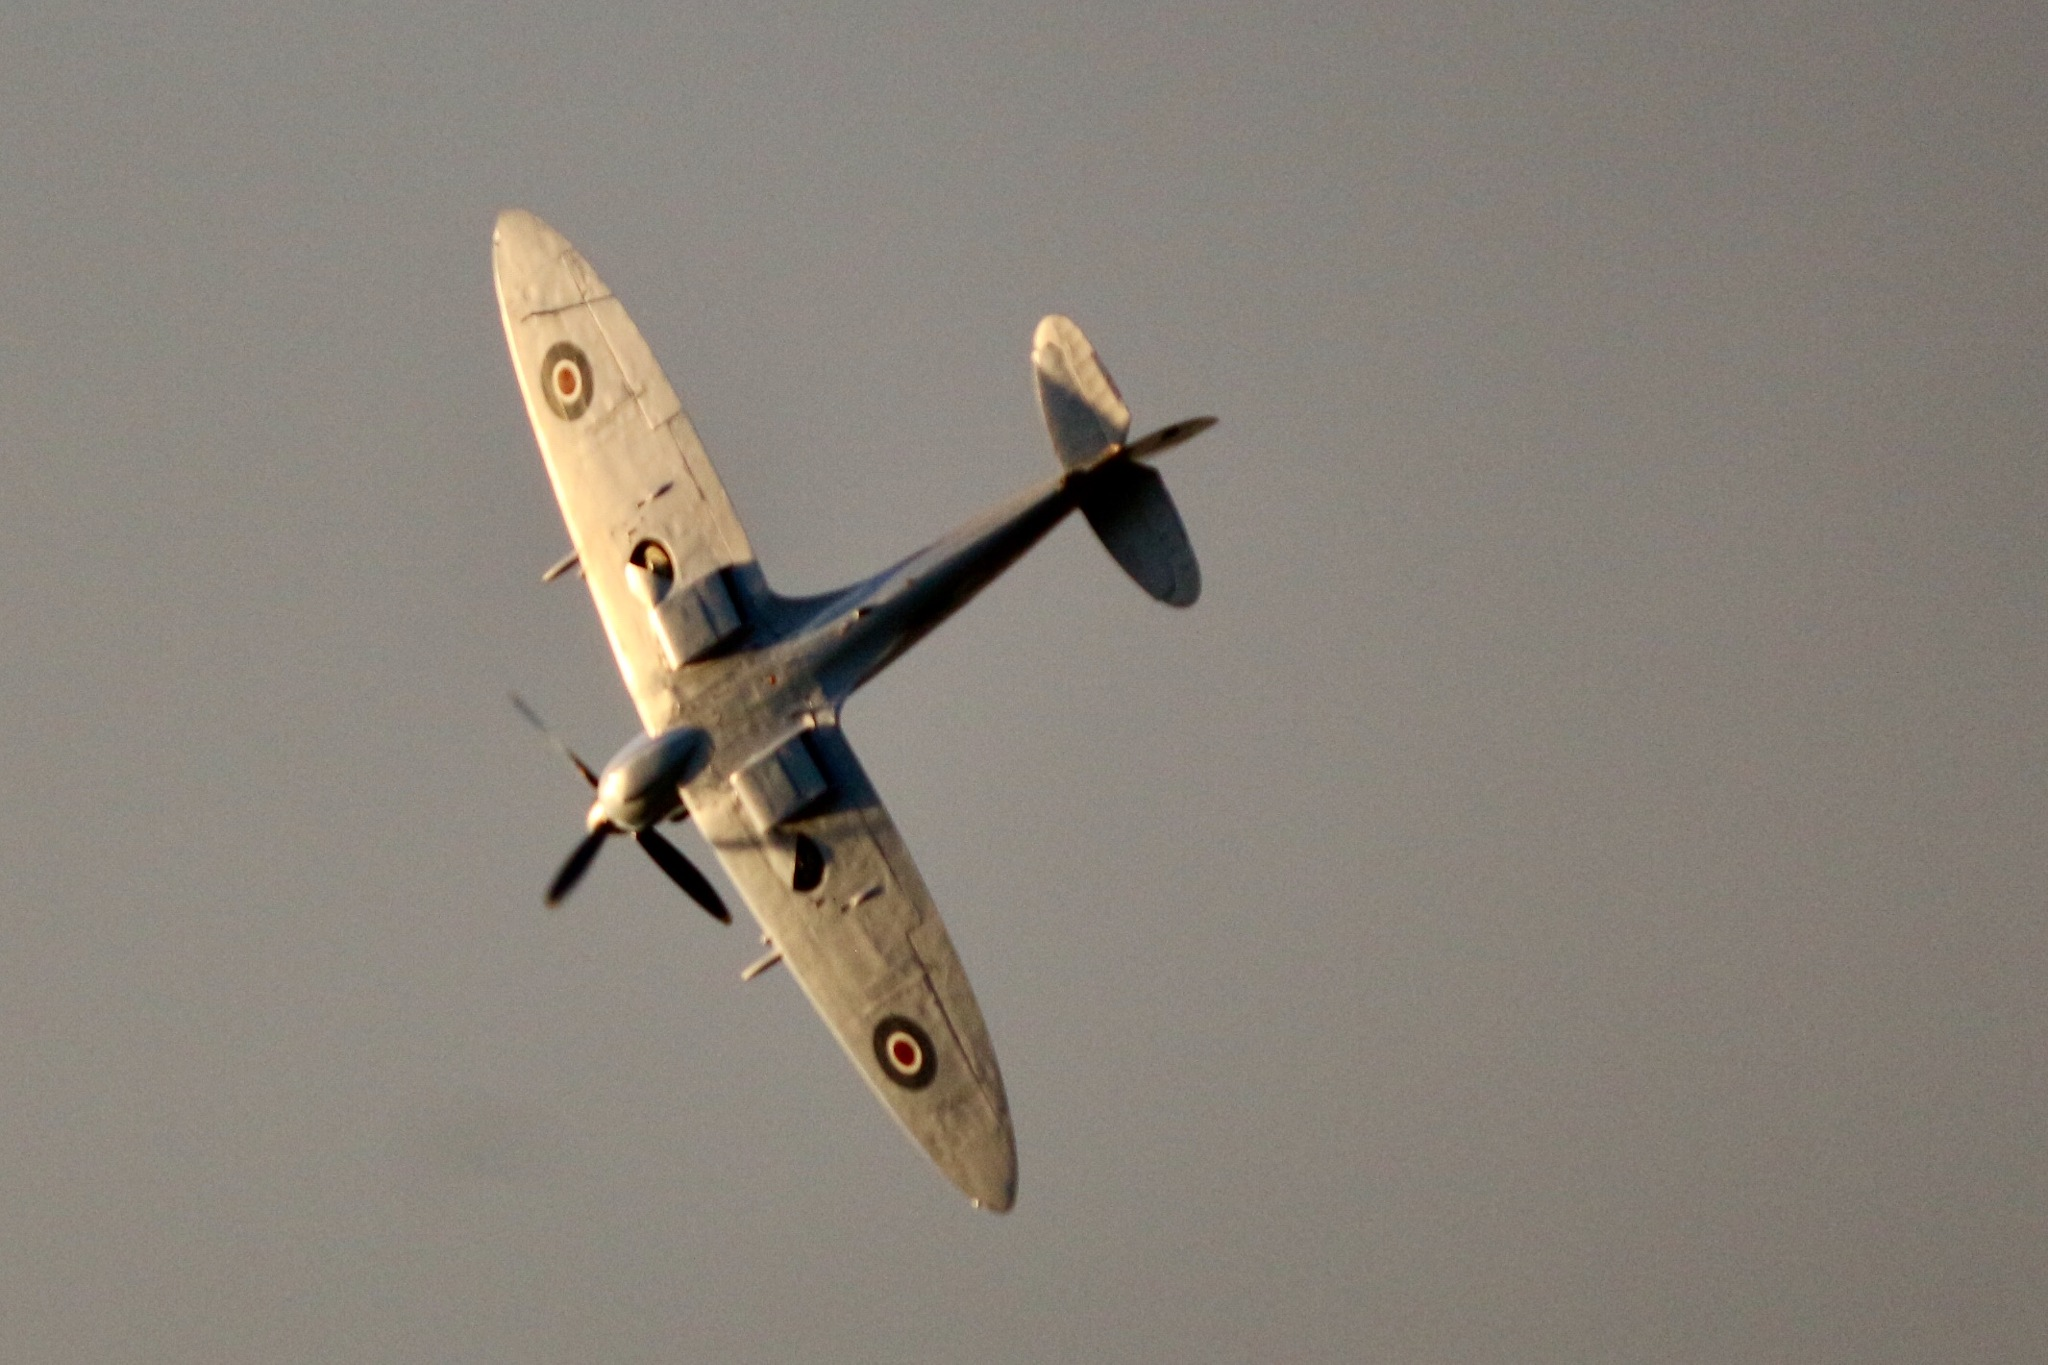 Tonights Spitfire Flypast by Terry Reynolds